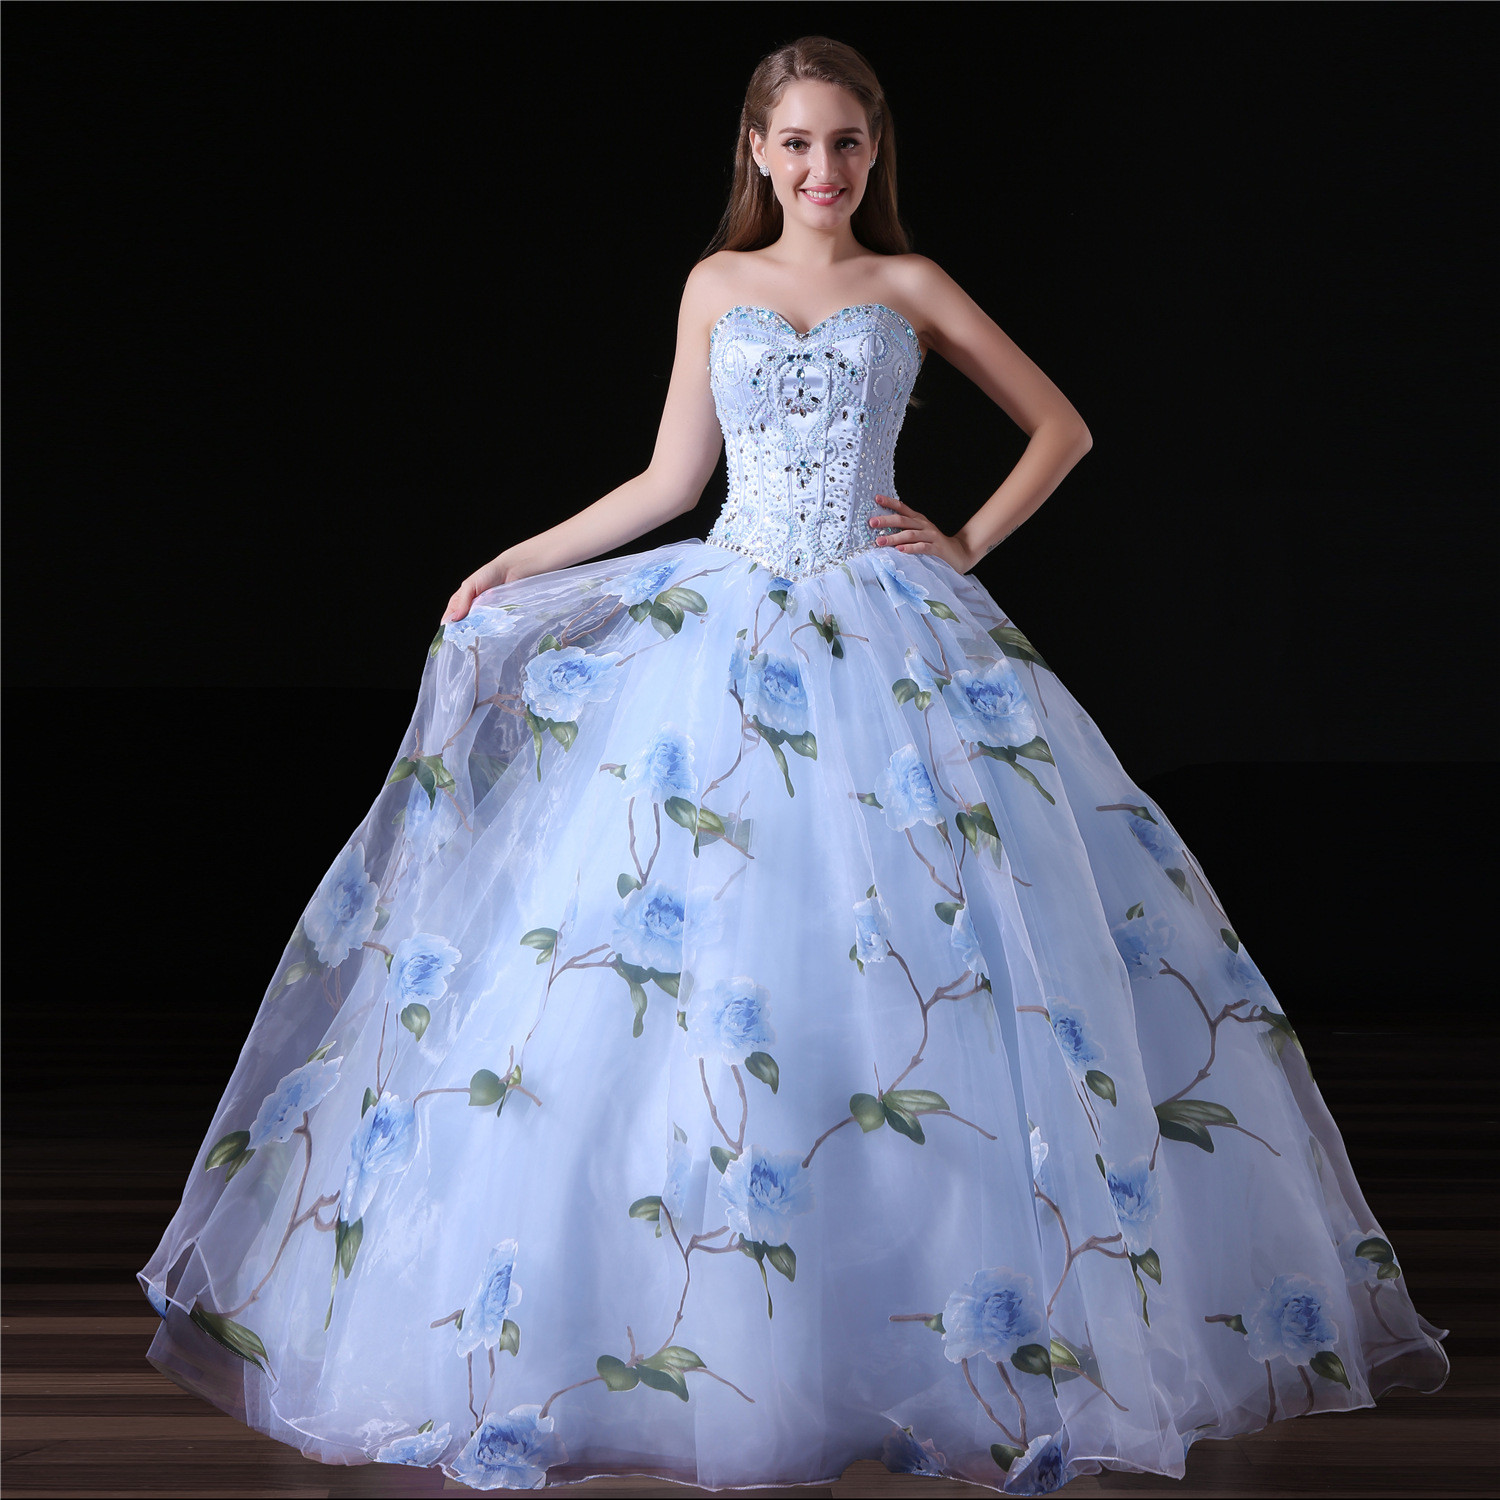 Blue Ball Gown Prom Dress Sweetheart Princess Girls Gowns